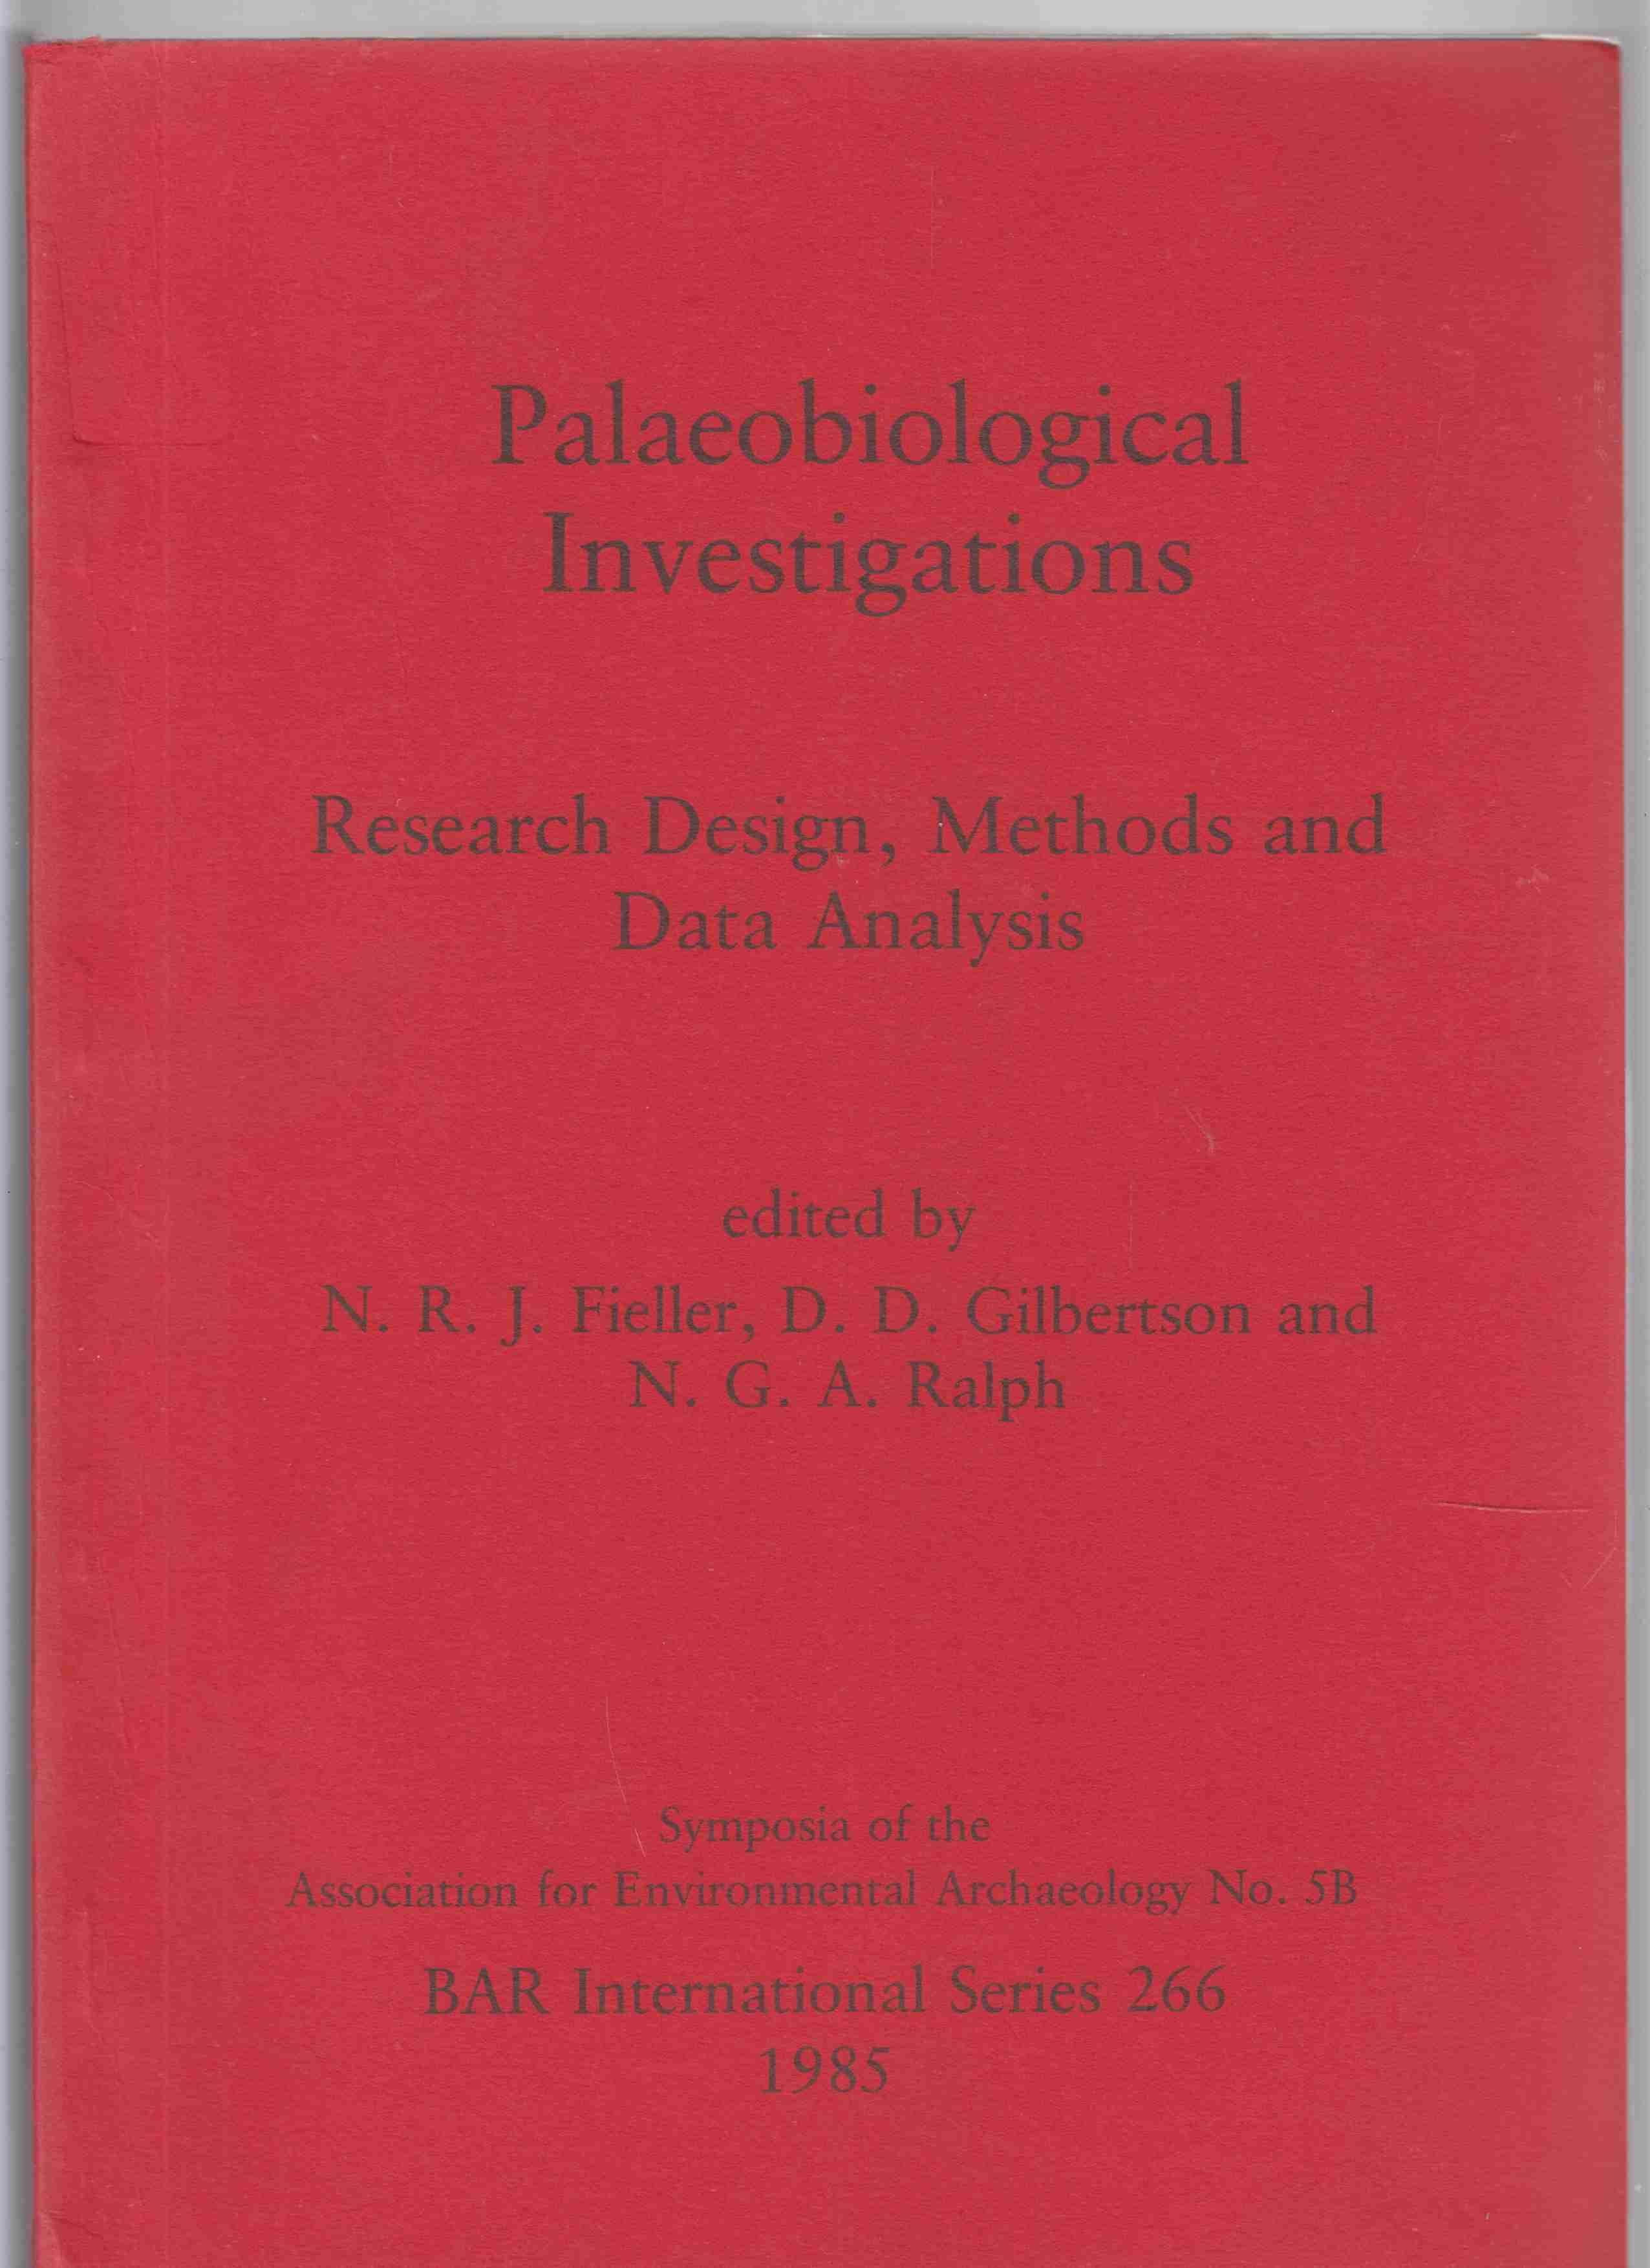 Image for Paleobiological Investigations Research Design, Methods and Data Analysis Symposia of the Association for Environmental Archaeology No. 5B